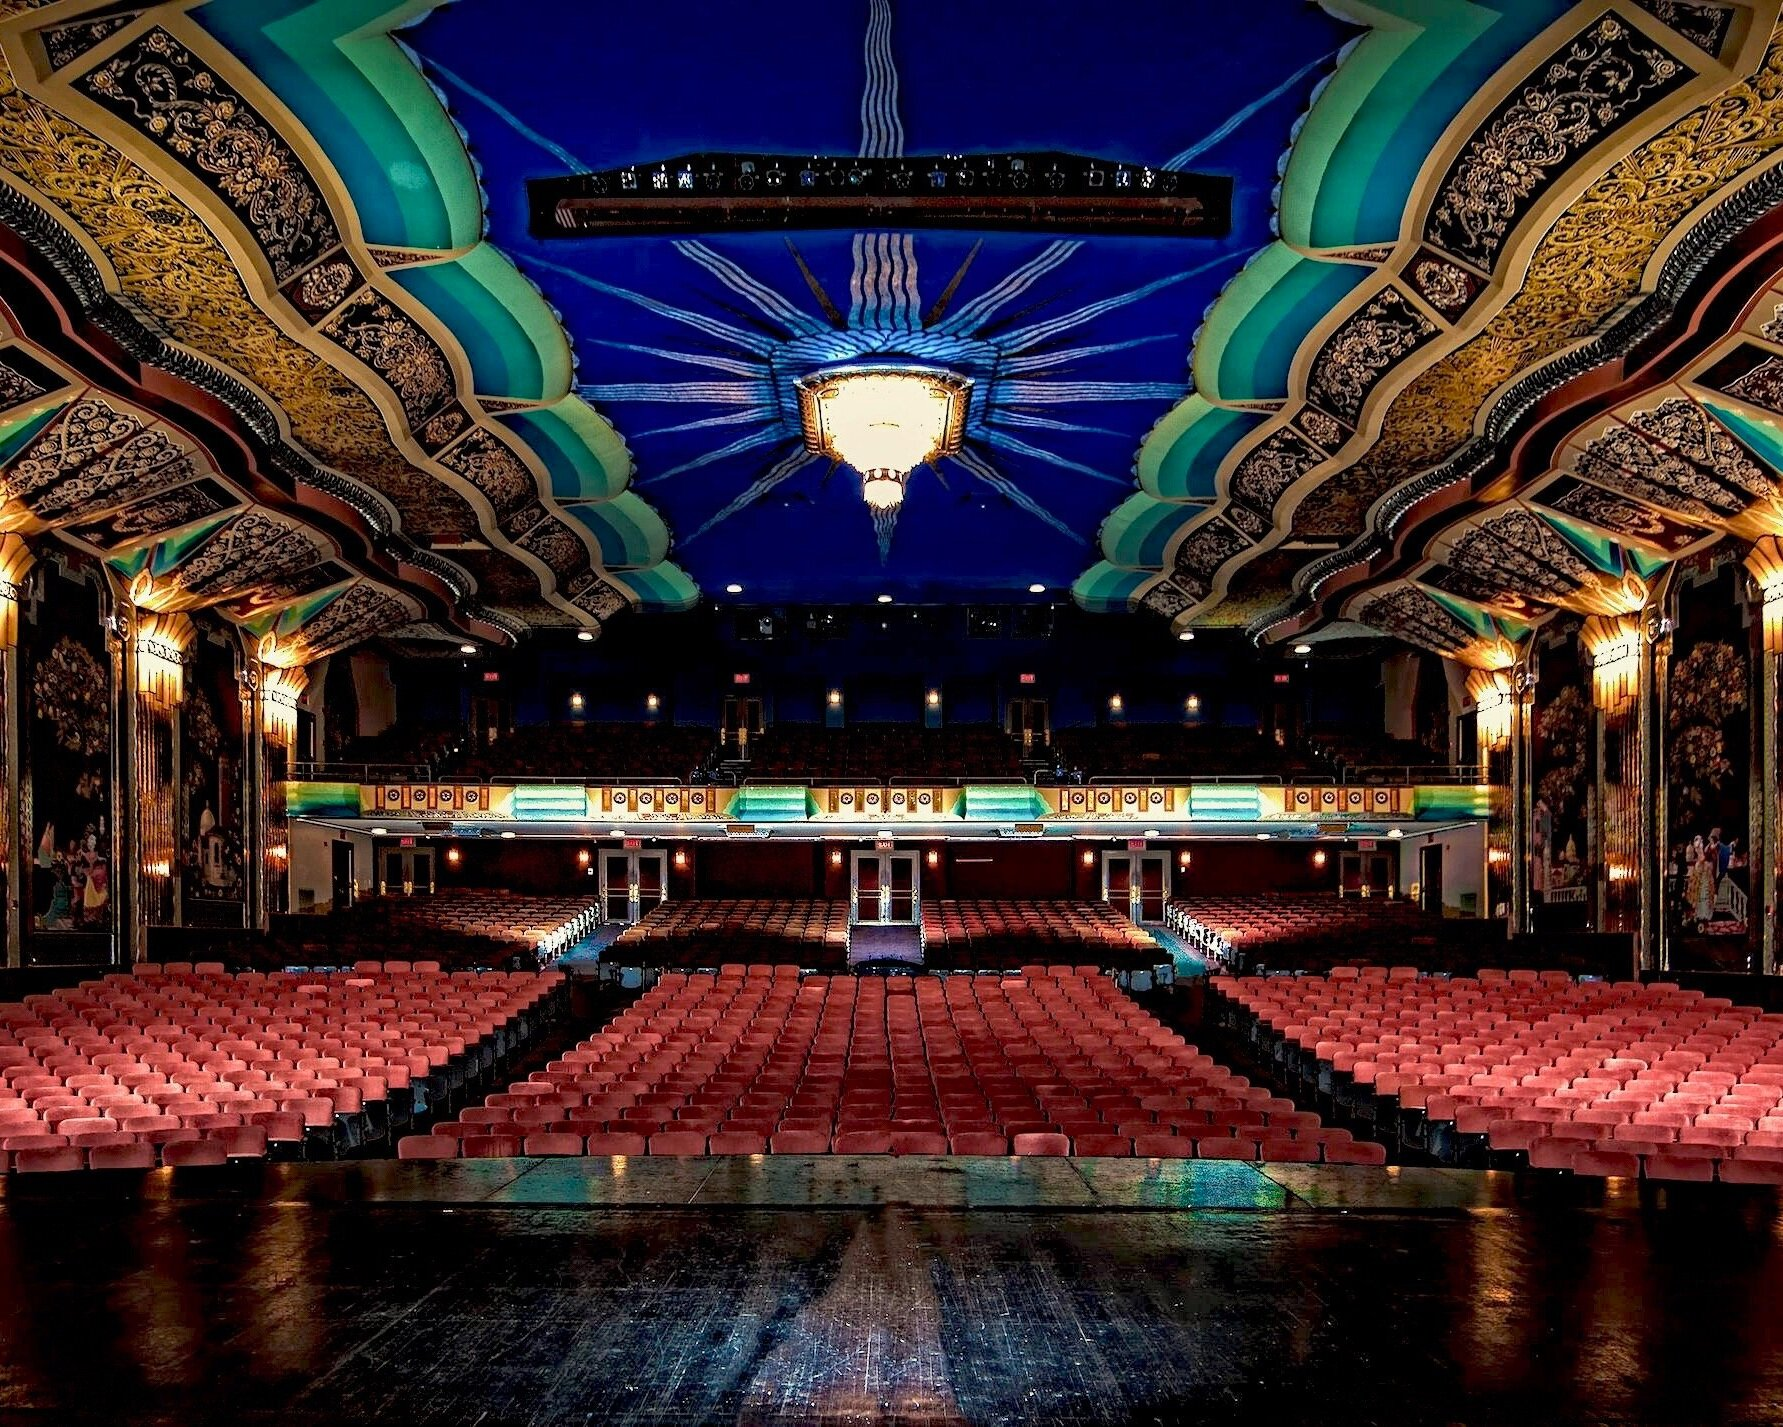 Paramount Theatre, Aurora, Illinois, combines Venetian décor and Art Deco architecture, as well as putting on amazing Broadway shows!